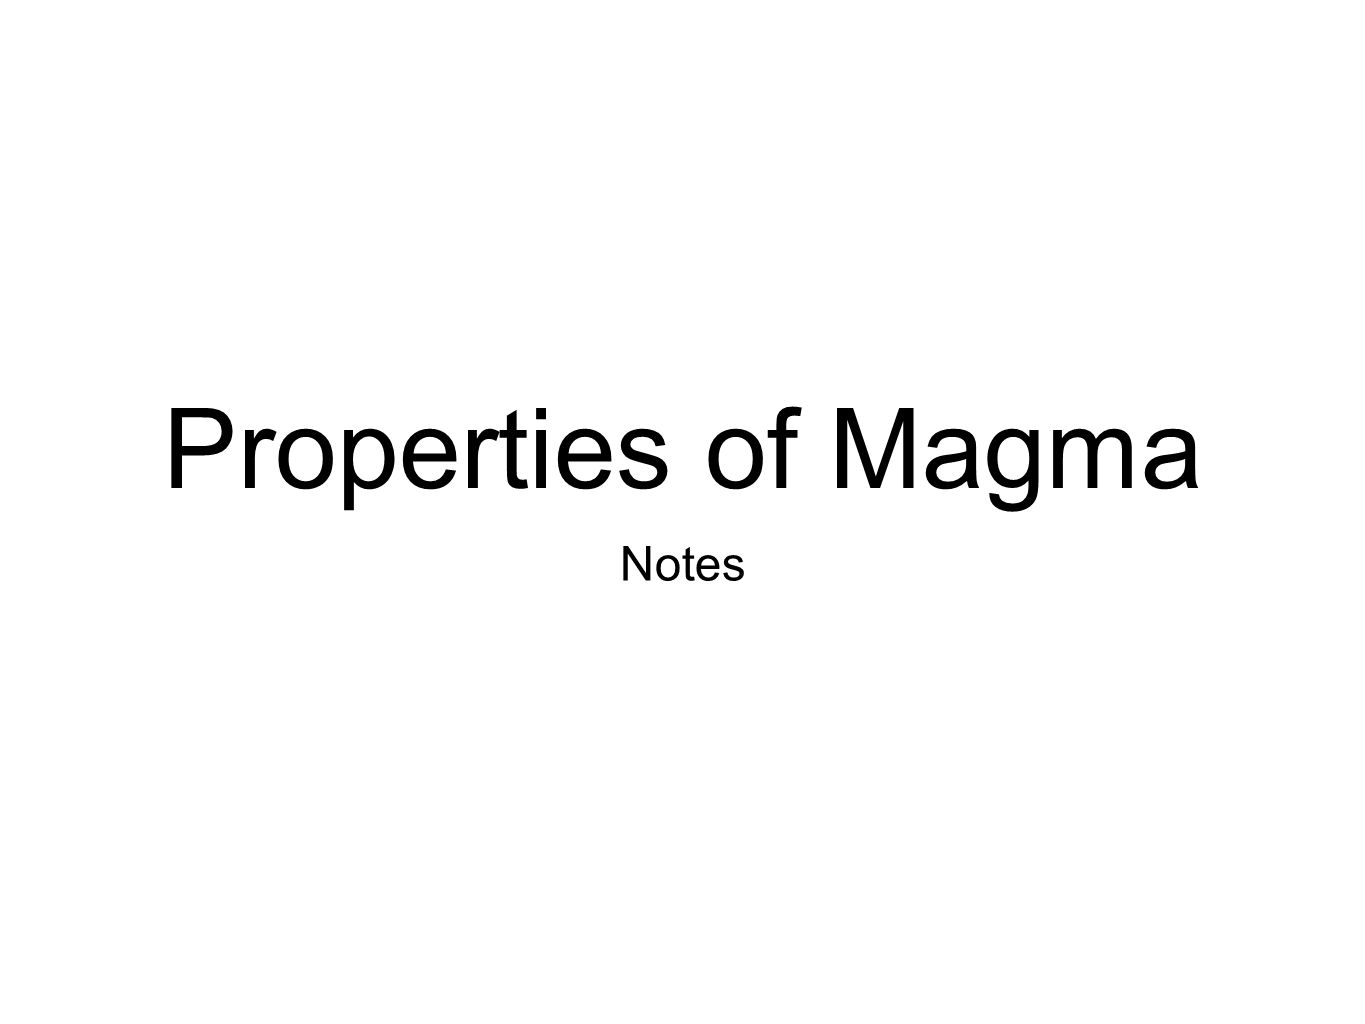 Properties of Magma Notes